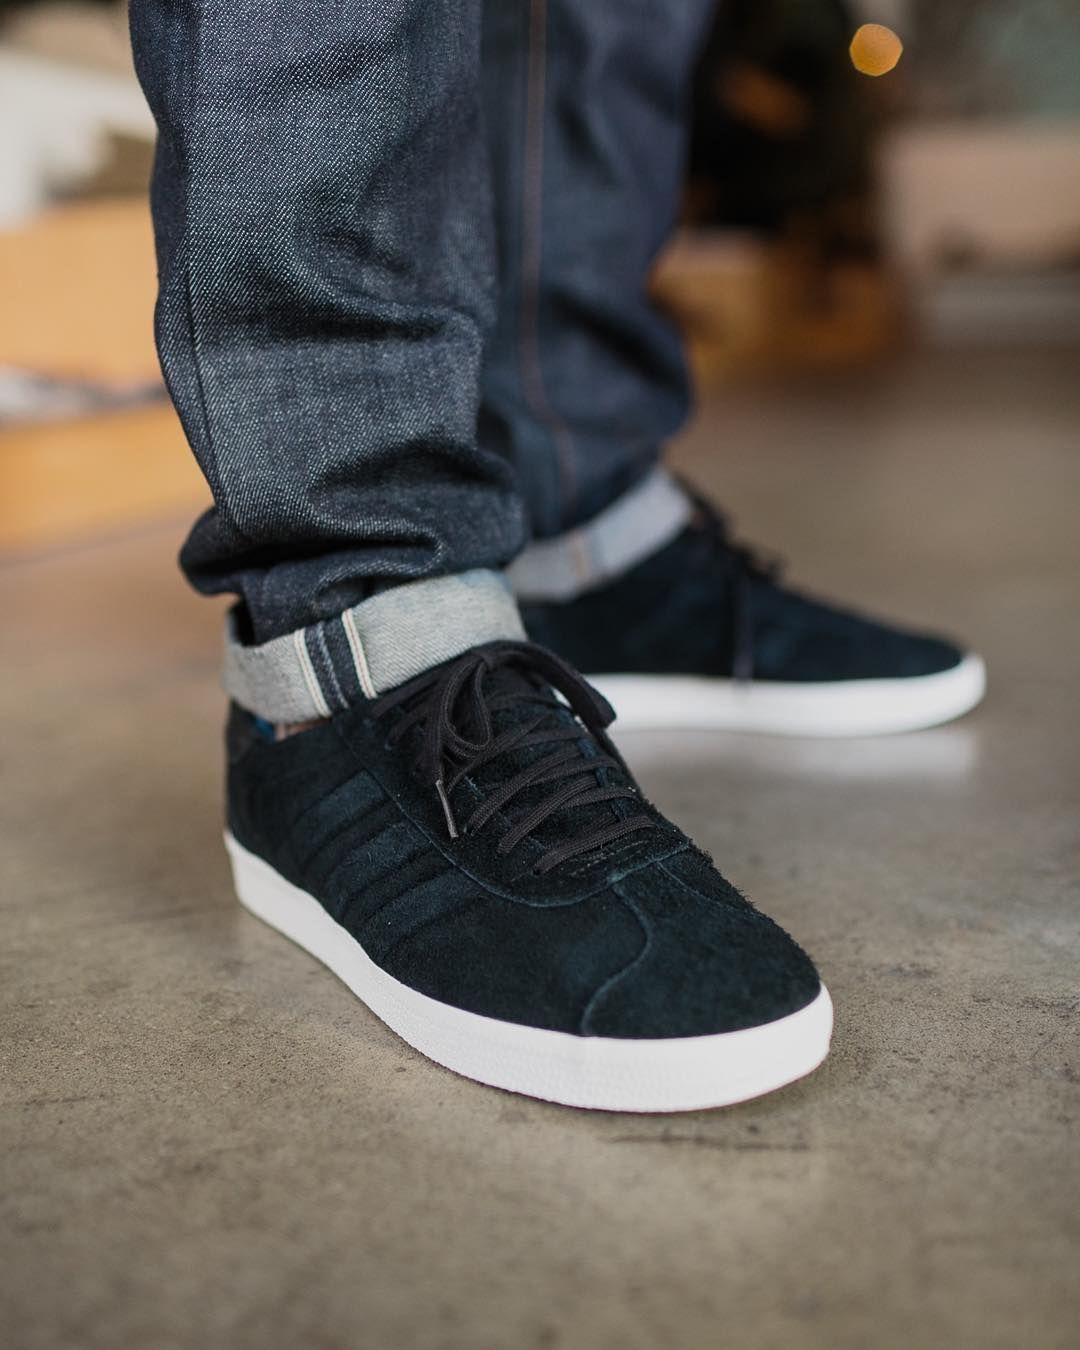 2a107adfe2  mulpix Rough suede Gazelle from Adidas Originals x Wings + Horns in full  black on black scheme.